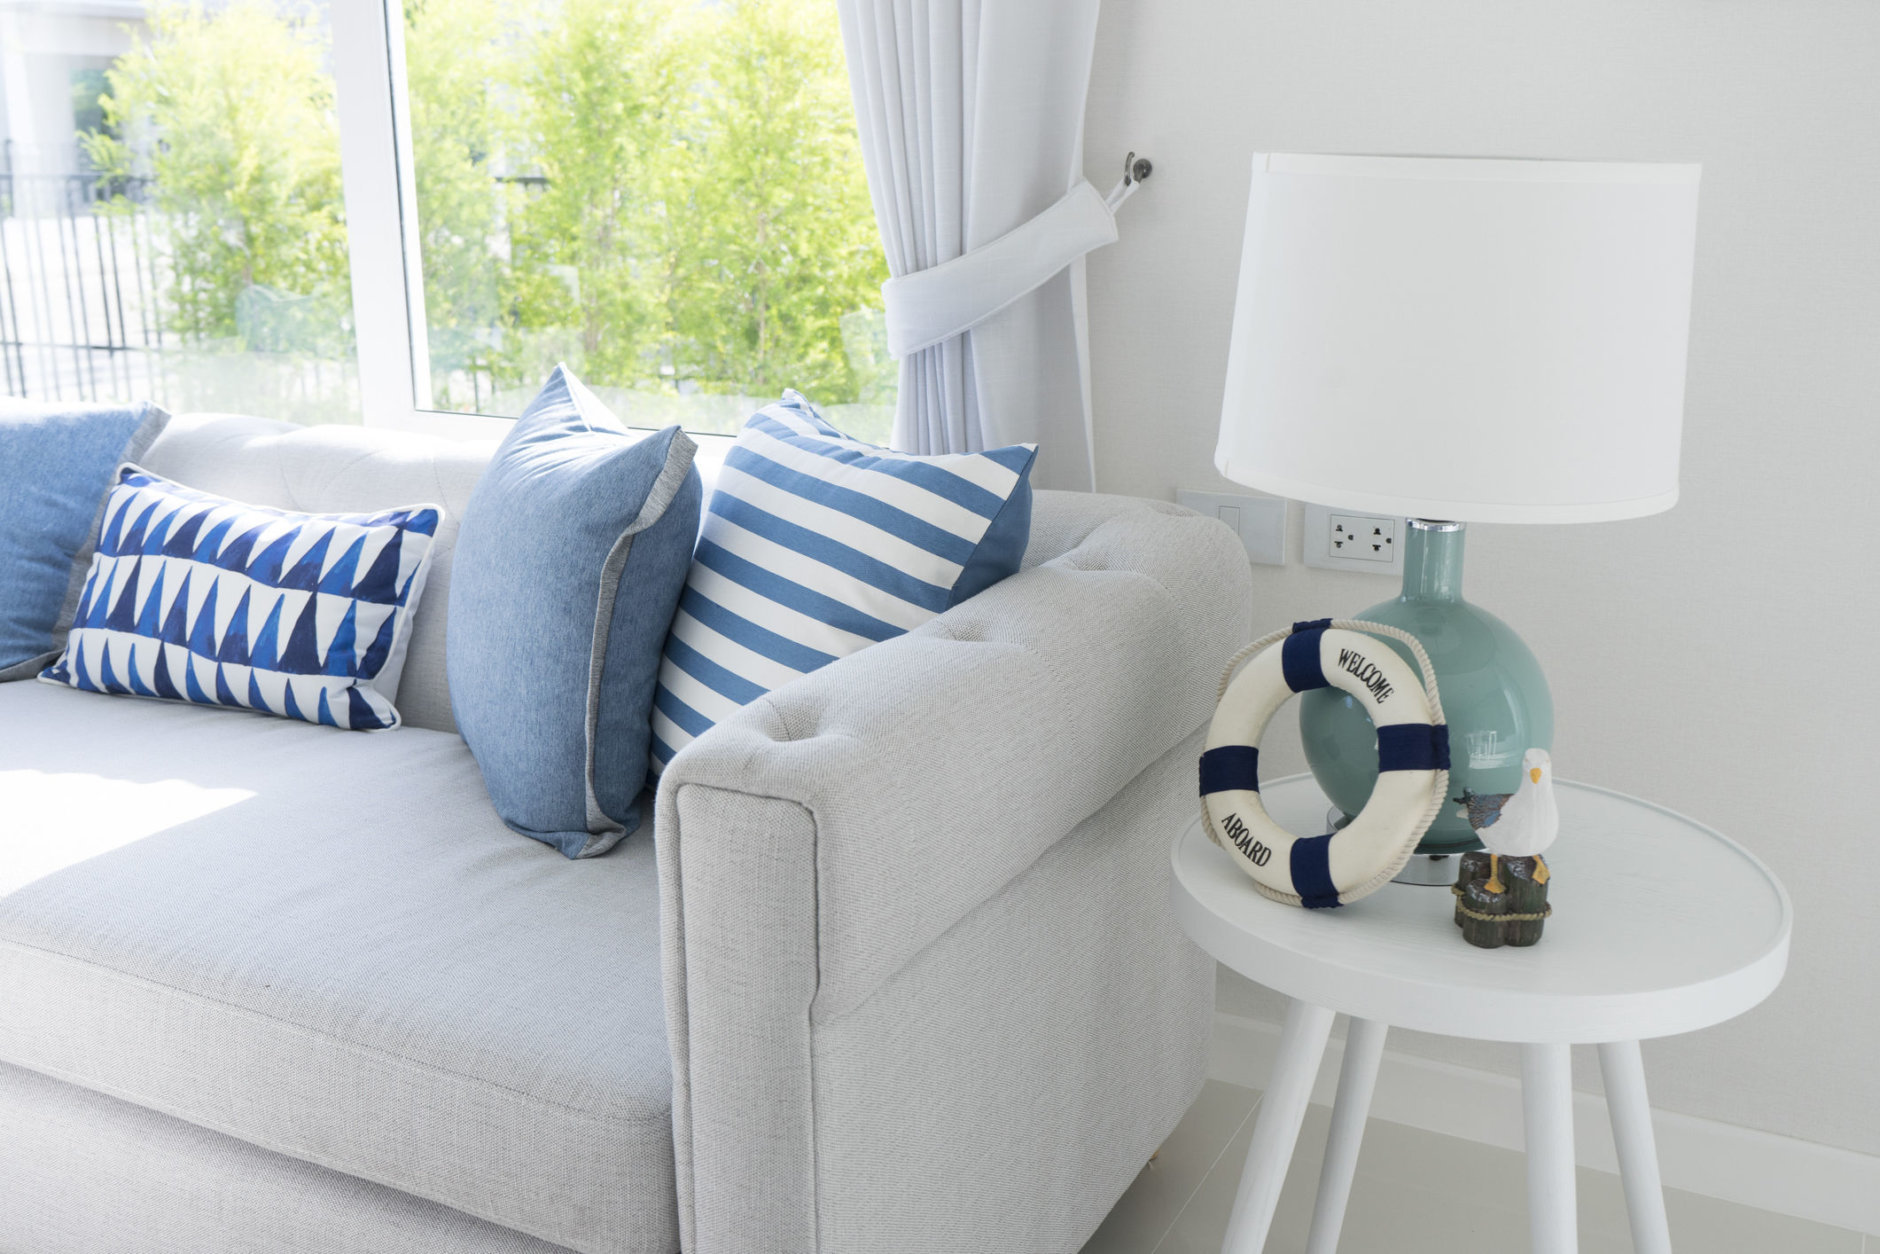 table lamp in blue tone beach house living room interior